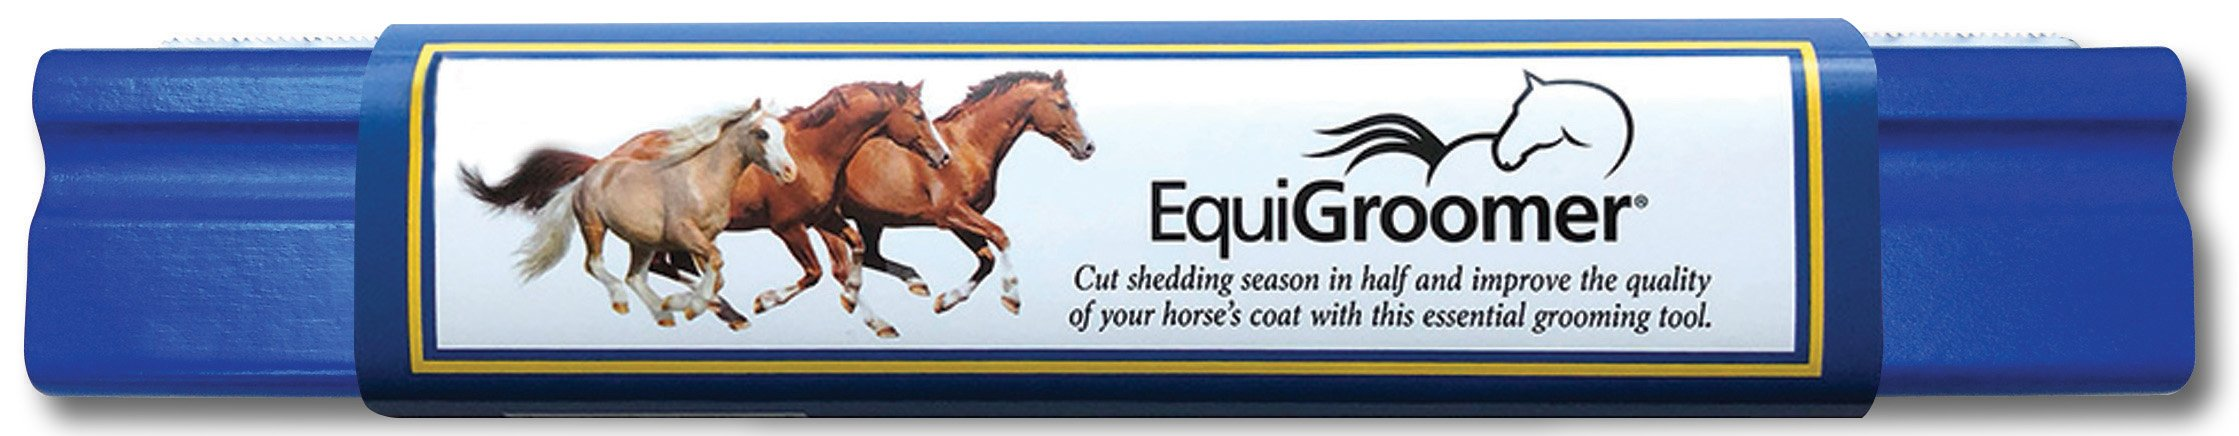 EquiGroomer Large 9'' Shedding/Grooming Tool for Horses (Blue) by EquiGroomer